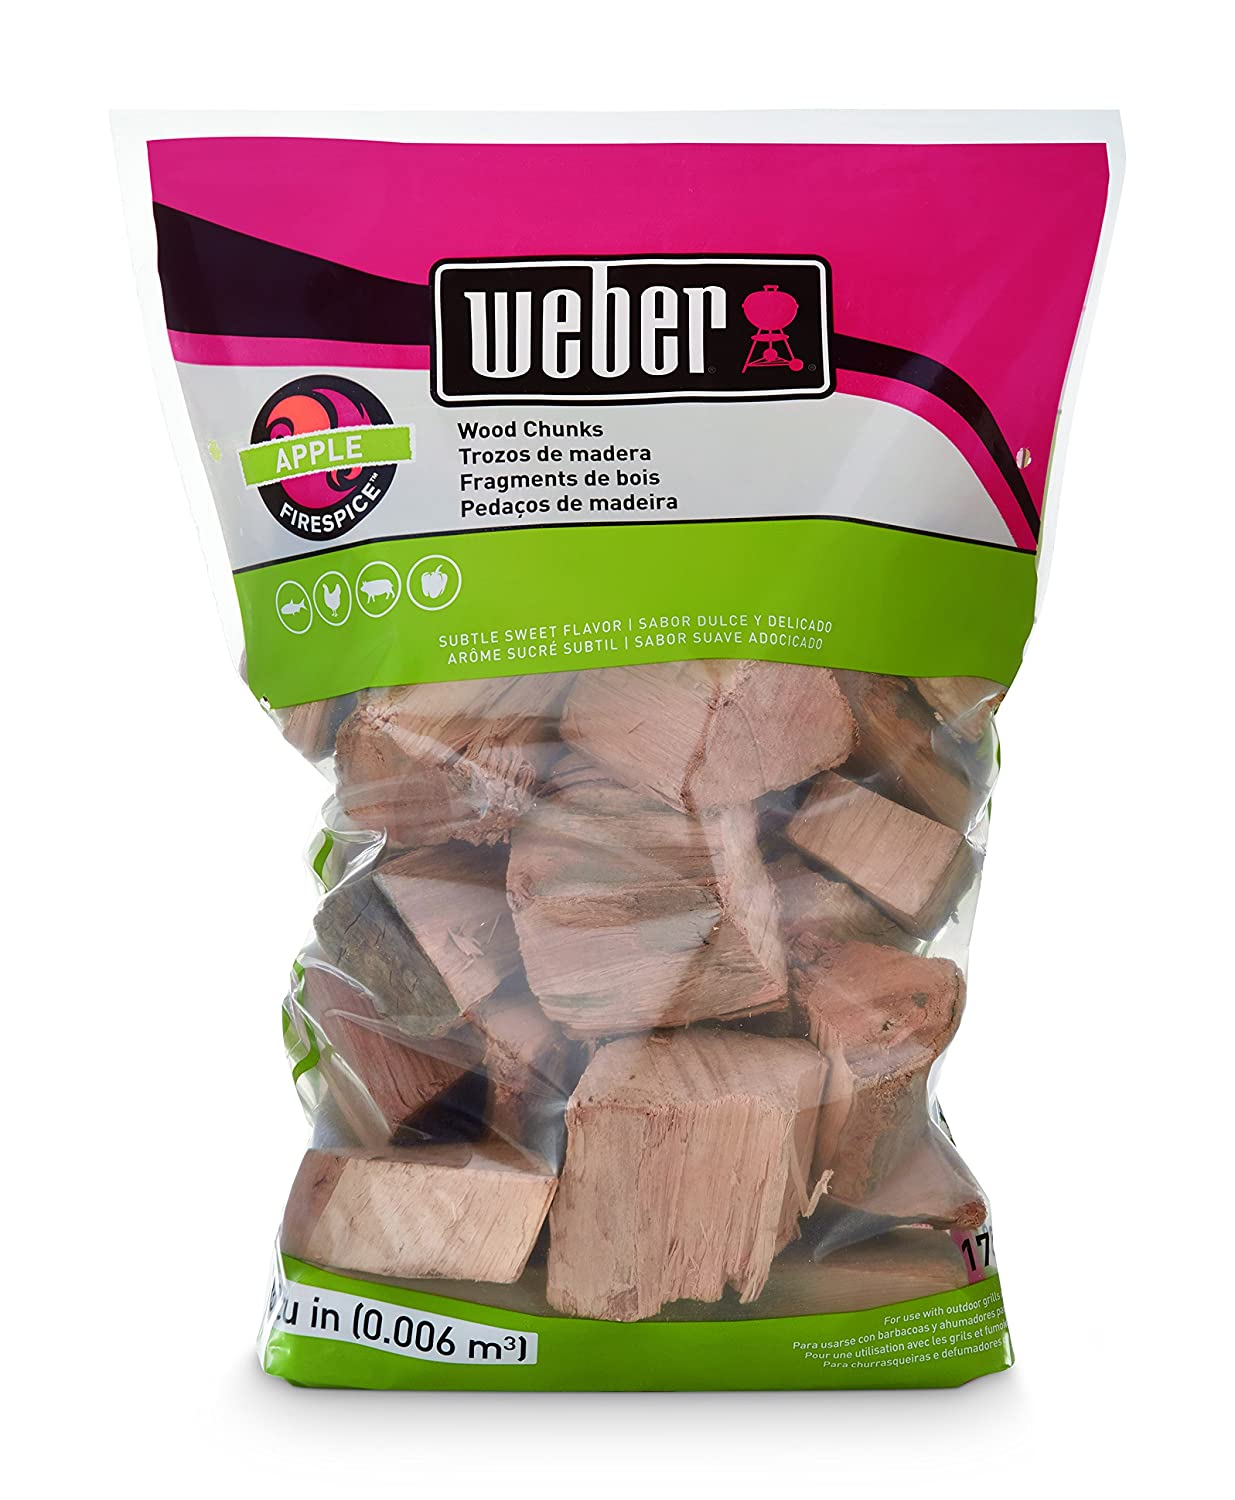 Weber 17139 Apple Wood Chunks, 350 cu. in. (0.006 Cubic Meter)